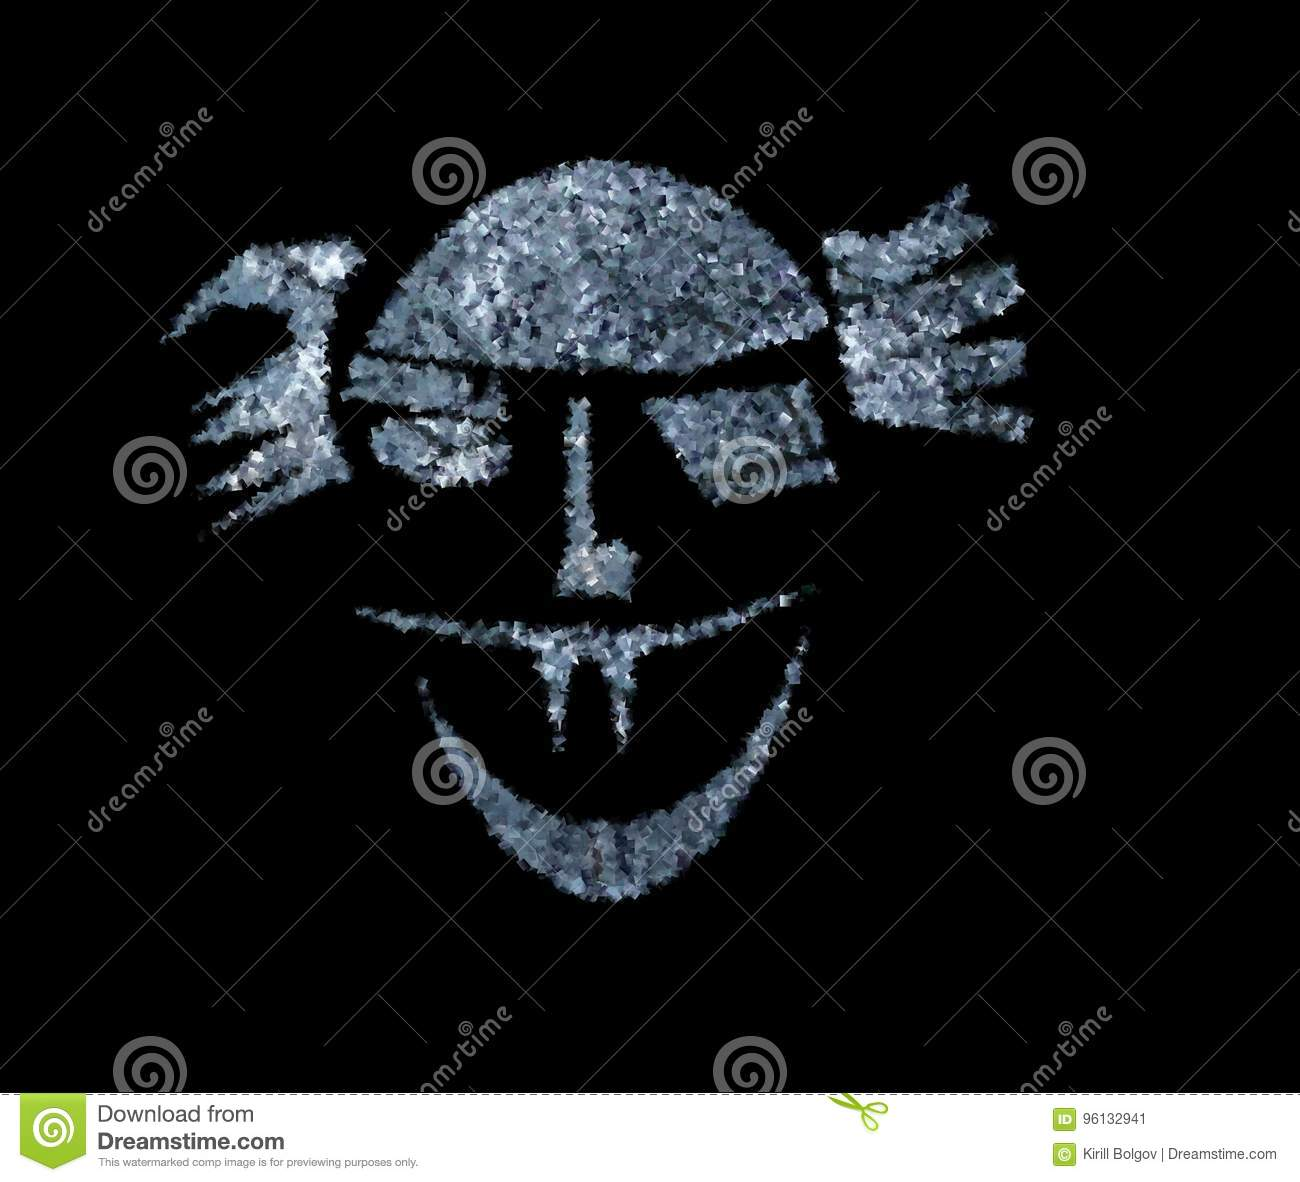 Illustration Of A Scary Bald Face On A Black Background